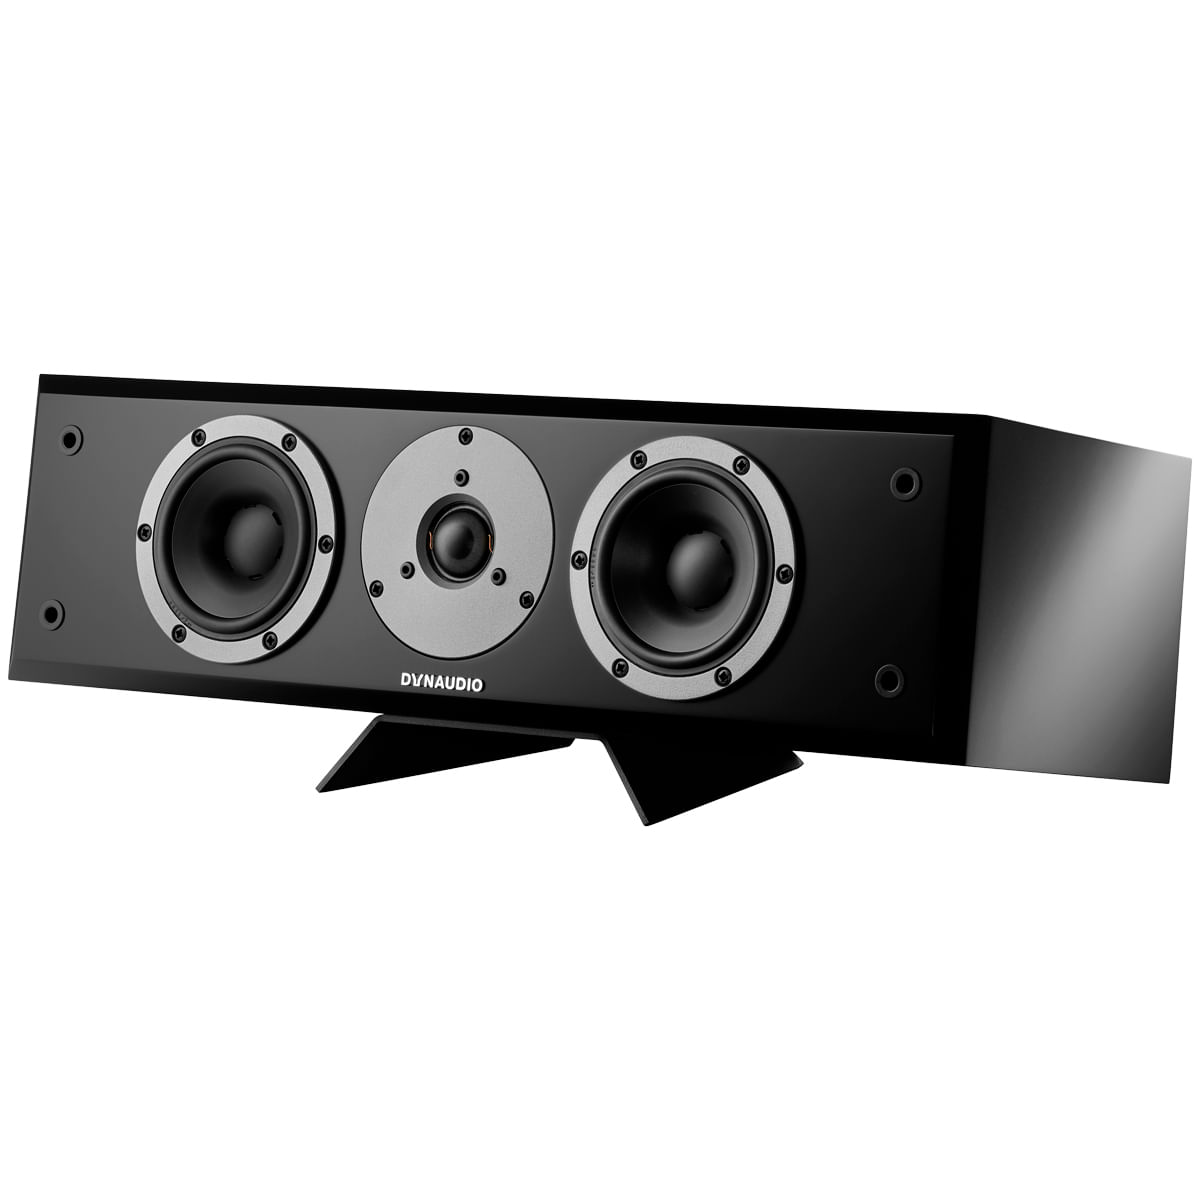 1-DYNAUDIO-EMIT-M15C-BLACK-MAIN